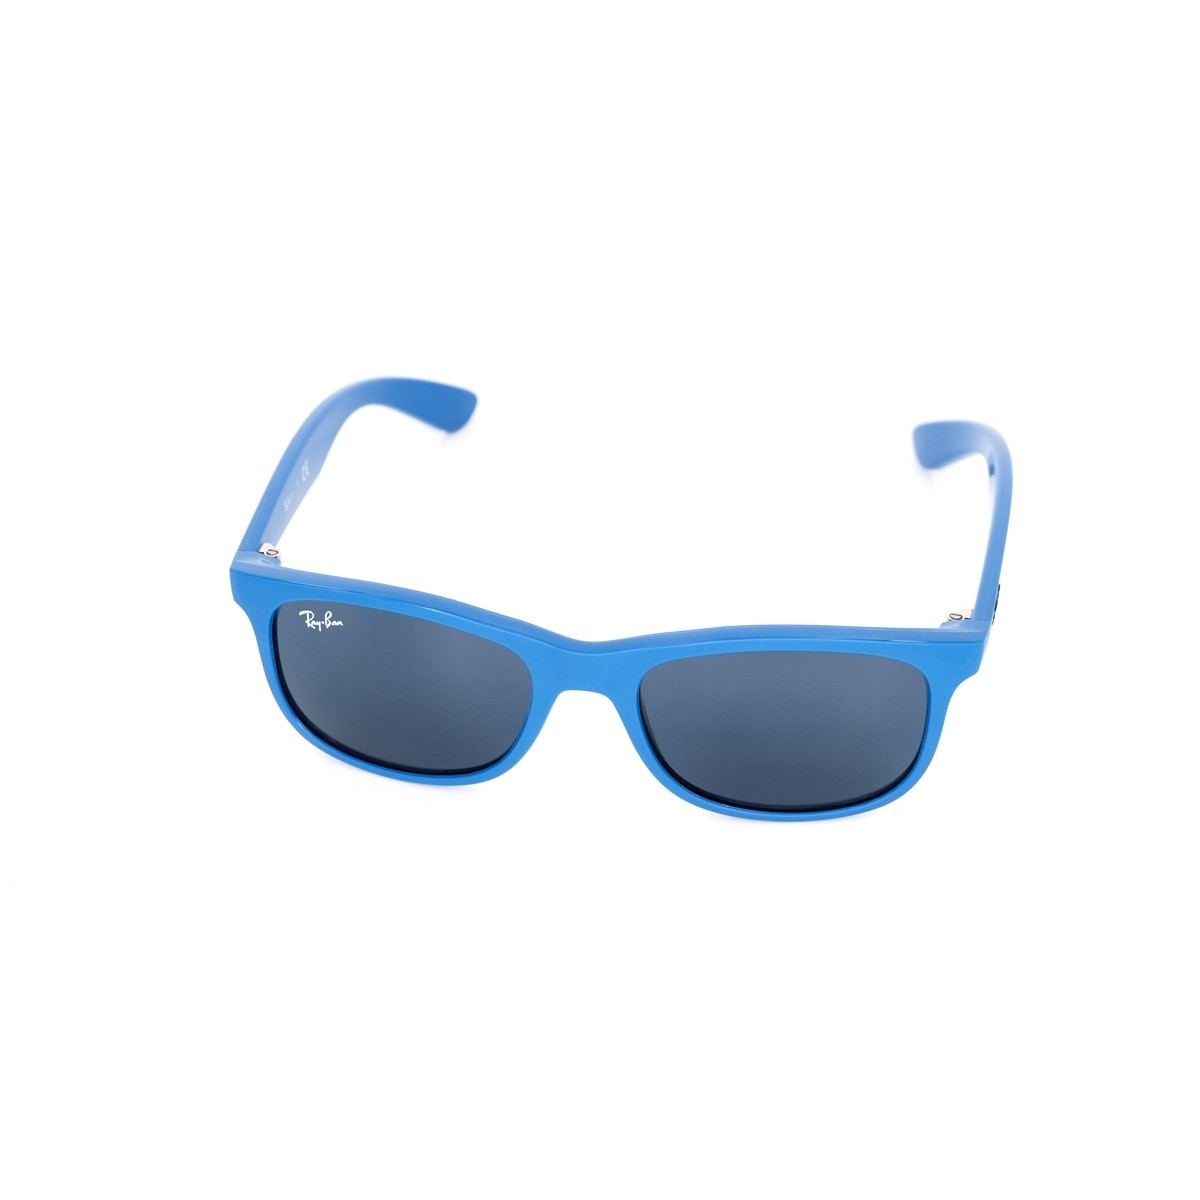 Ray Ban Junior 9062 701/80, 60,00 €, Occhiali Ray Ban Junior Blu a forma Rettangolare